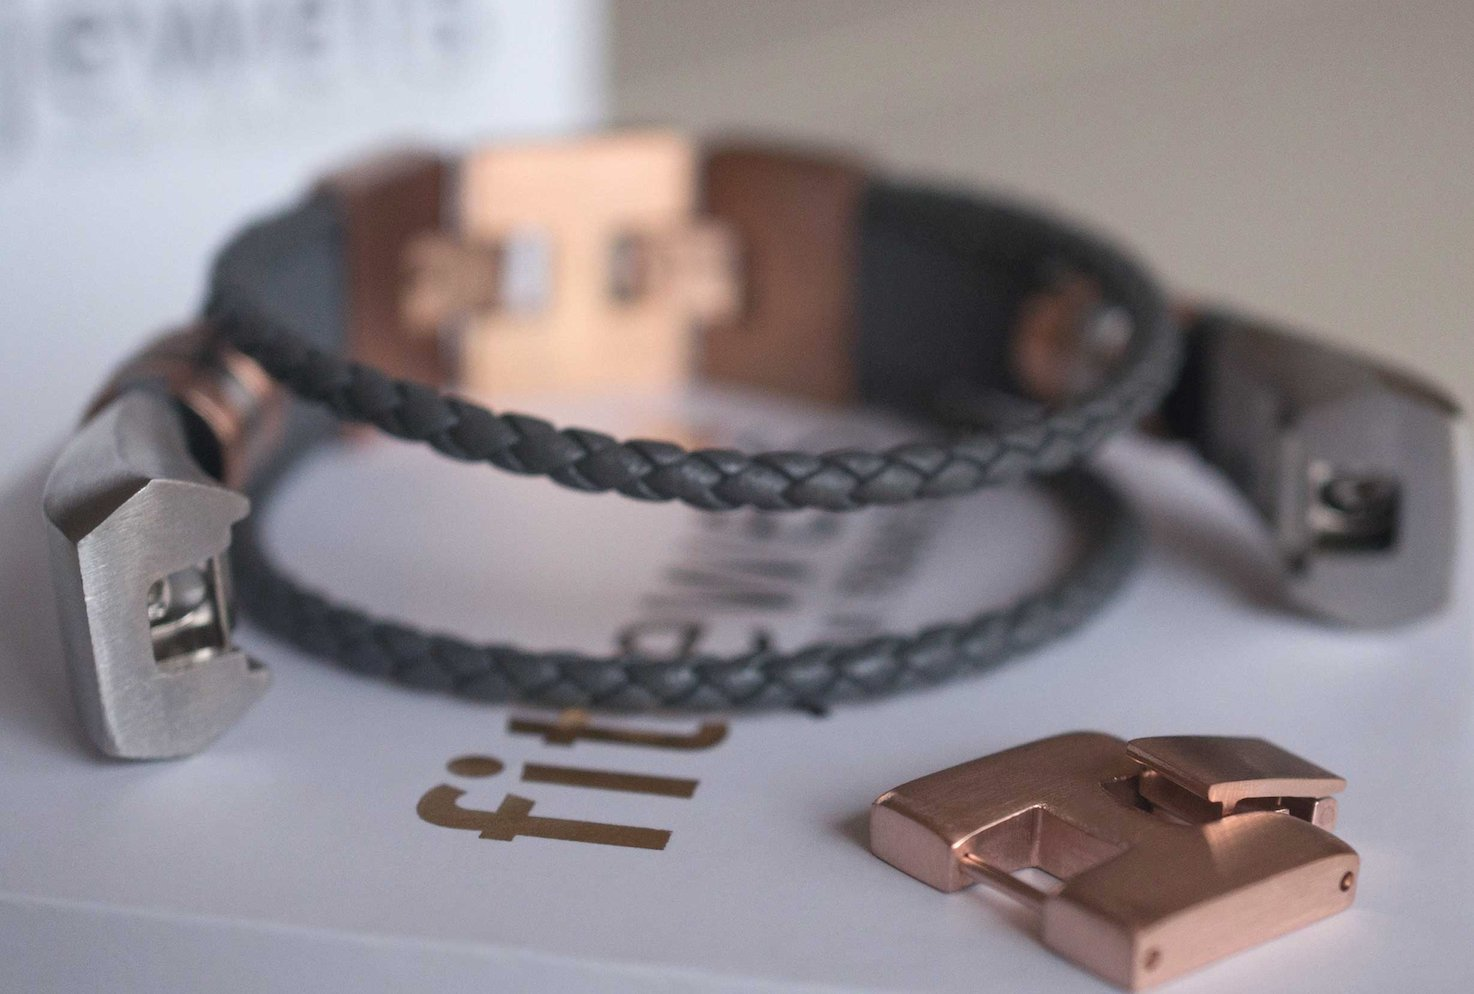 fitjewels Alta HR Bands - Aurel Leather Replacement Band, Available in Black, Brown, Gold, Silver and Grey (Grey-Rose Gold, S-M (5.5-6.5 inch)) by fitjewels